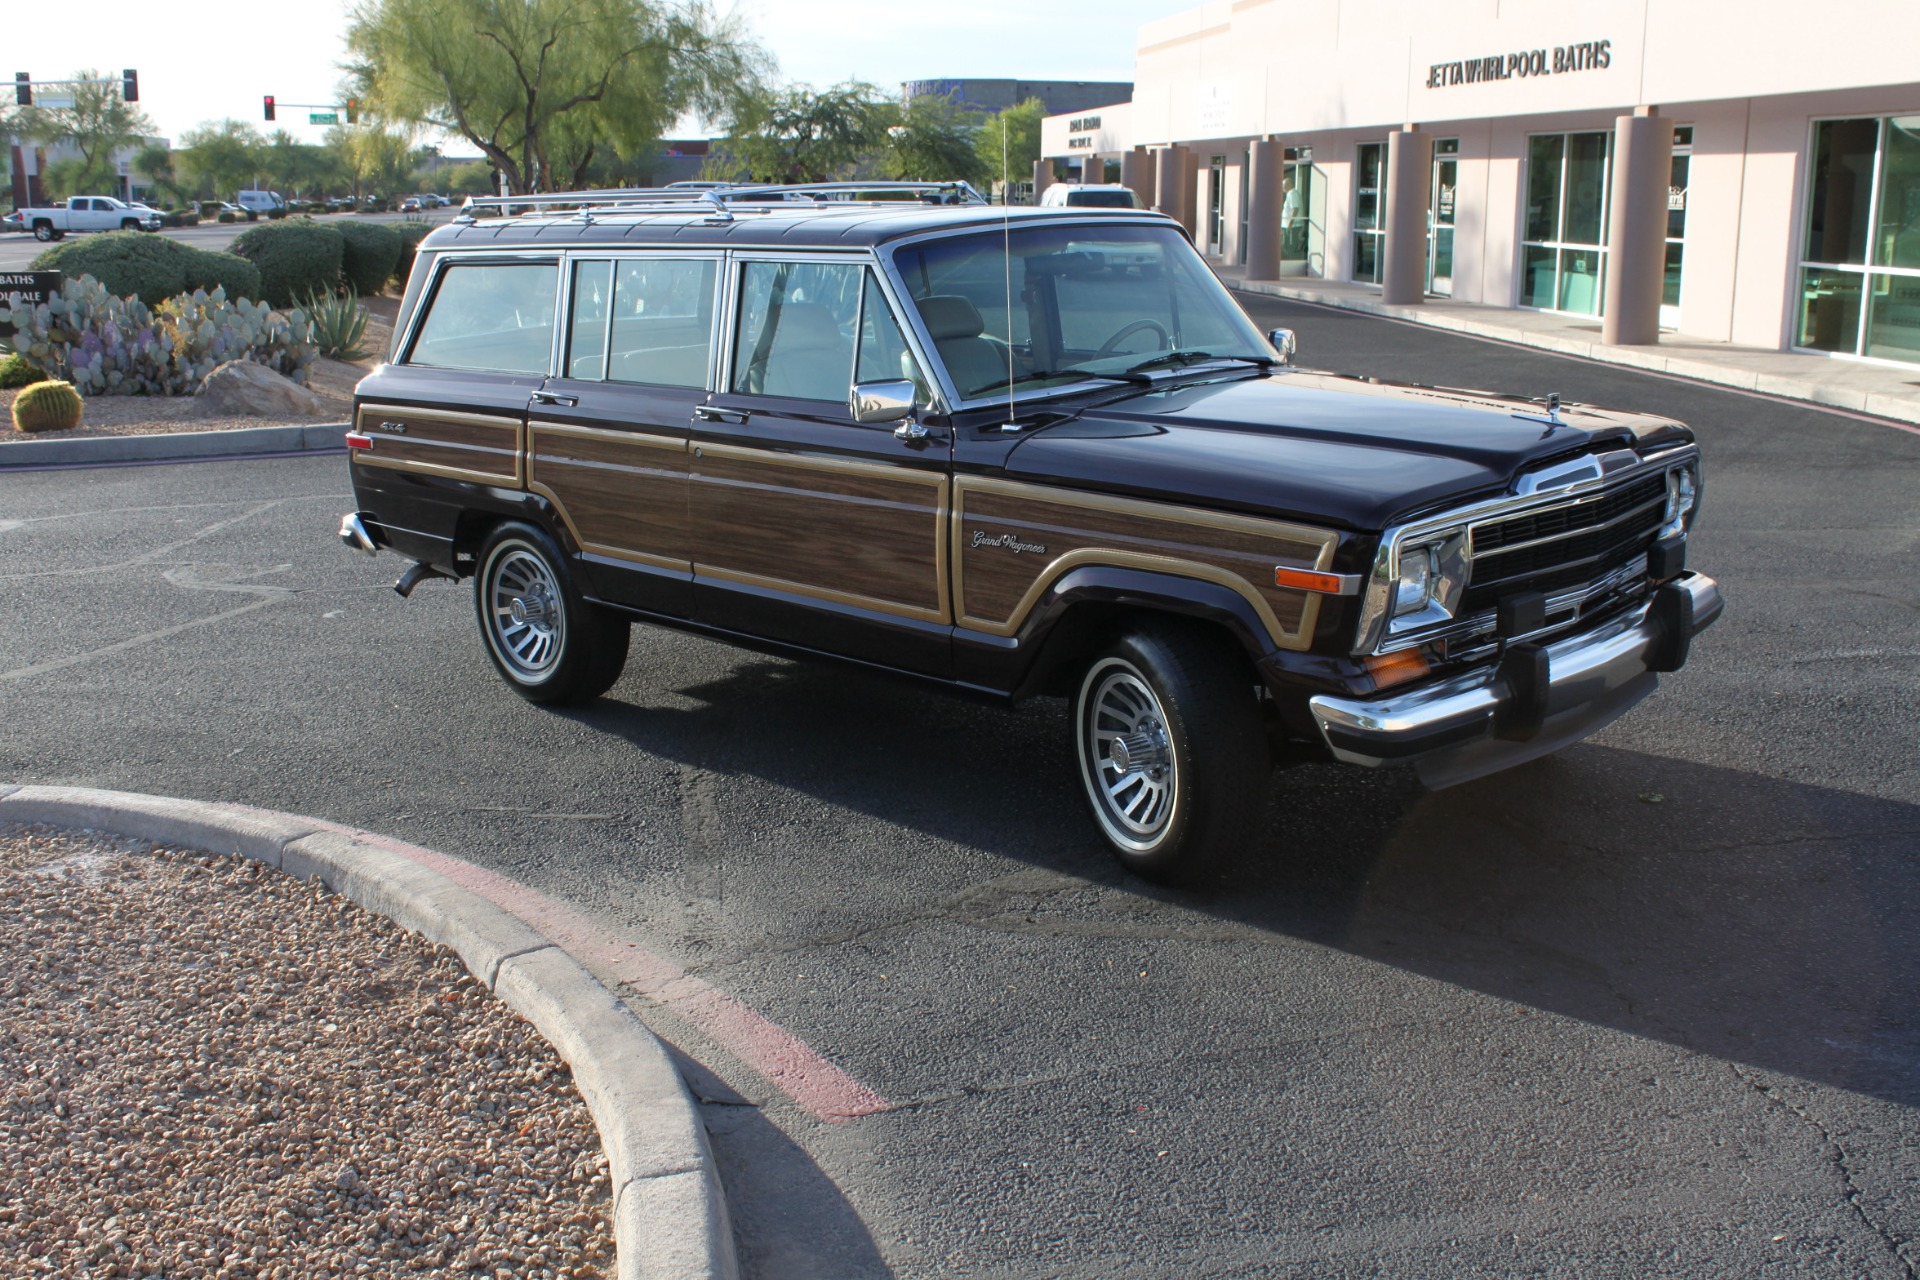 Used-1990-Jeep-Grand-Wagoneer-4X4-Chevrolet